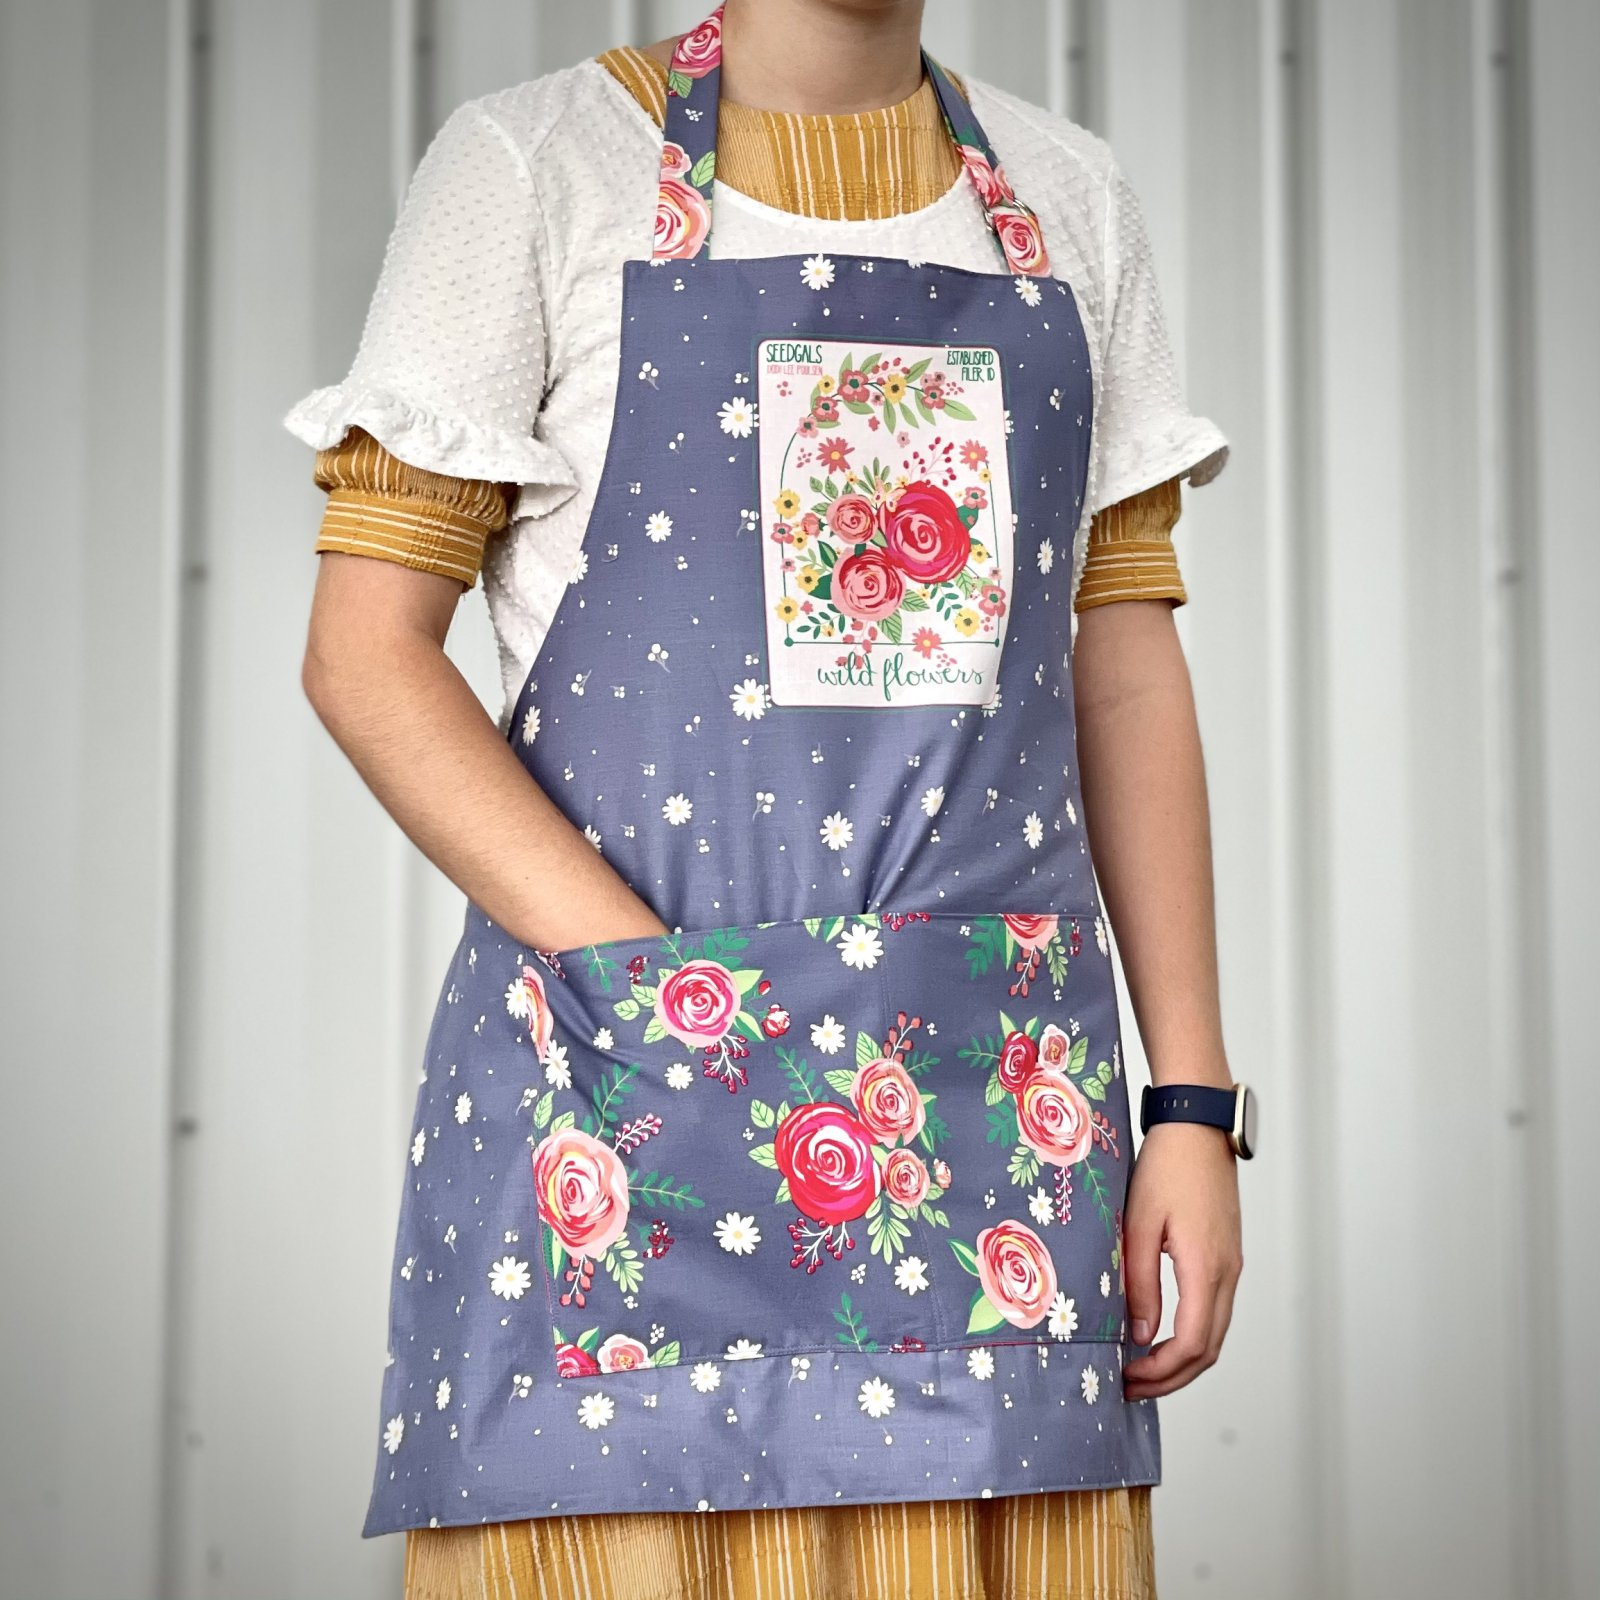 Poppy and Posey Apron Kit